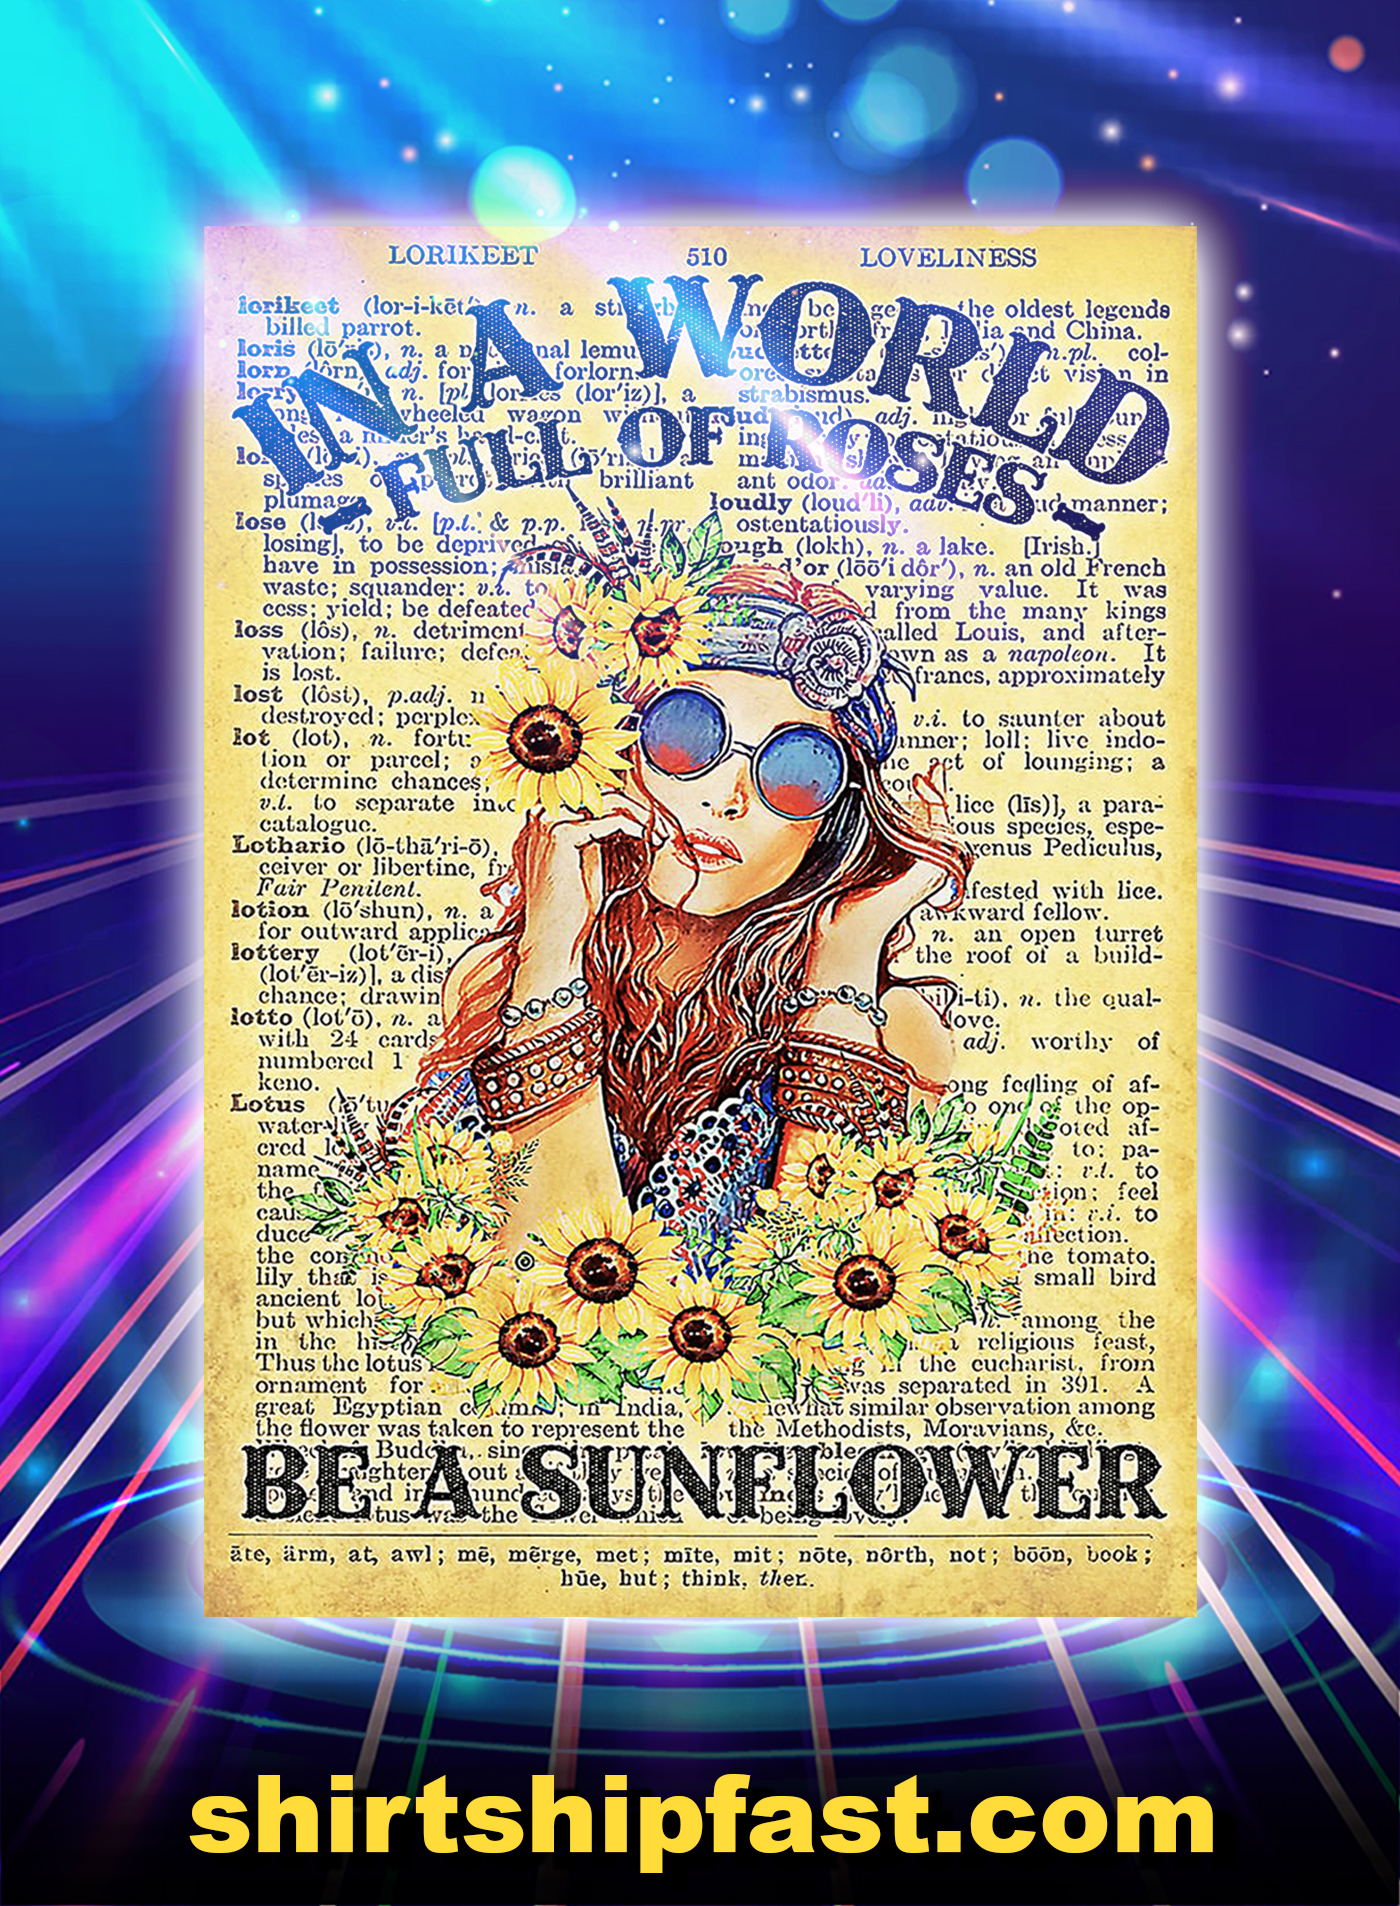 Hippie in a world full of roses be a sunflower poster - A1